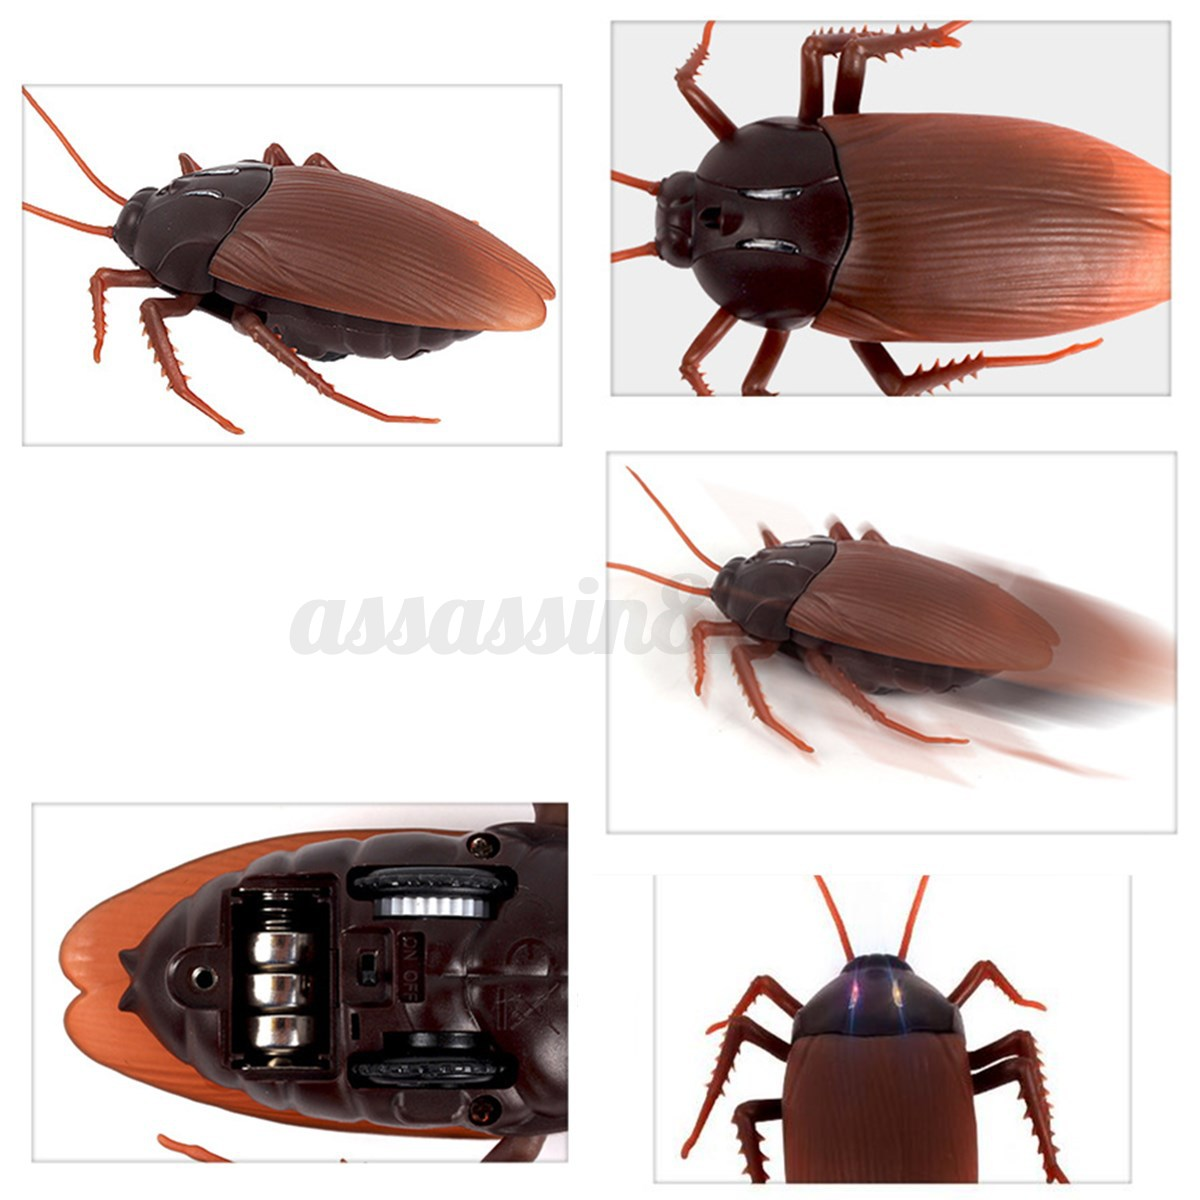 Bug Toys For Boys : Simulation infrared rc remote control scary creepy insect